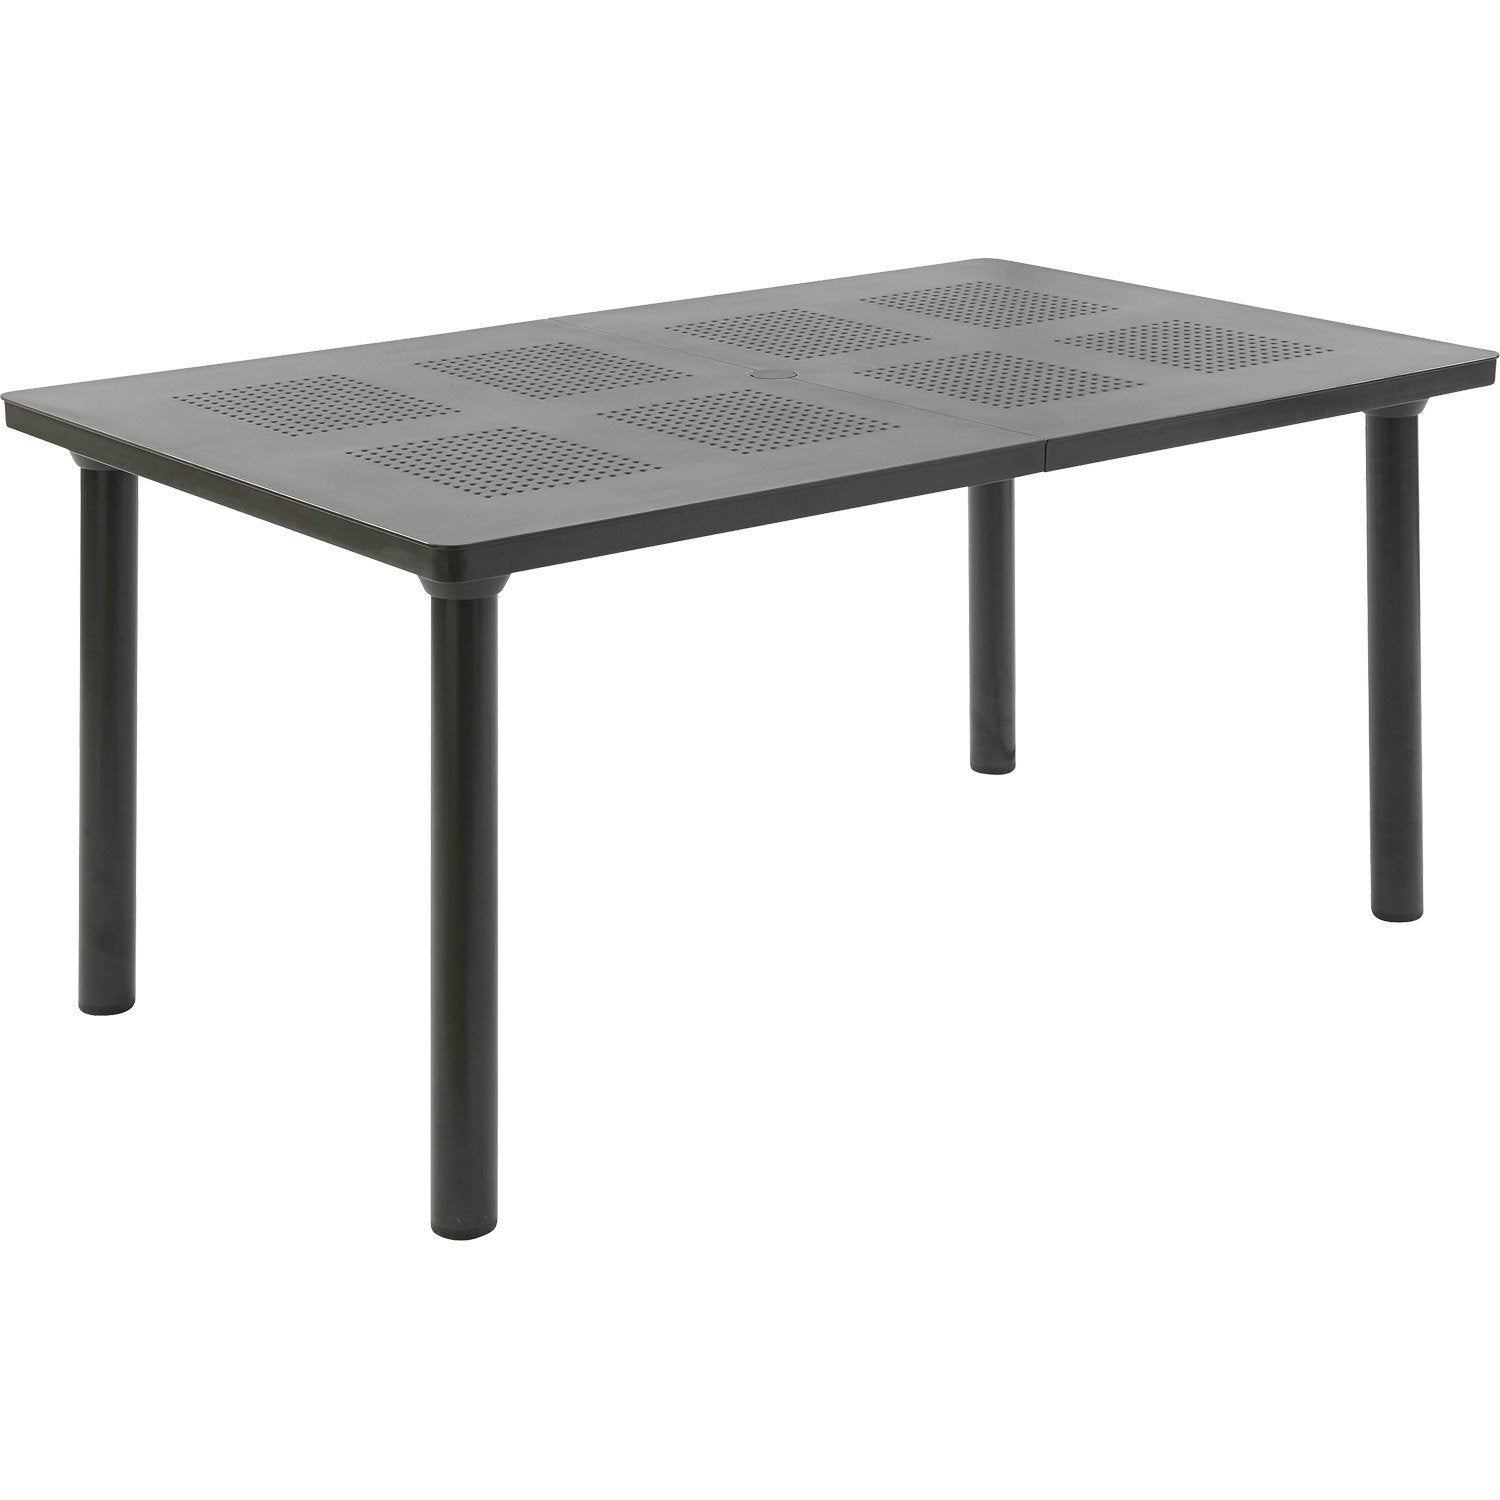 Table jardin ronde pas cher - Leroy merlin table pliante ...